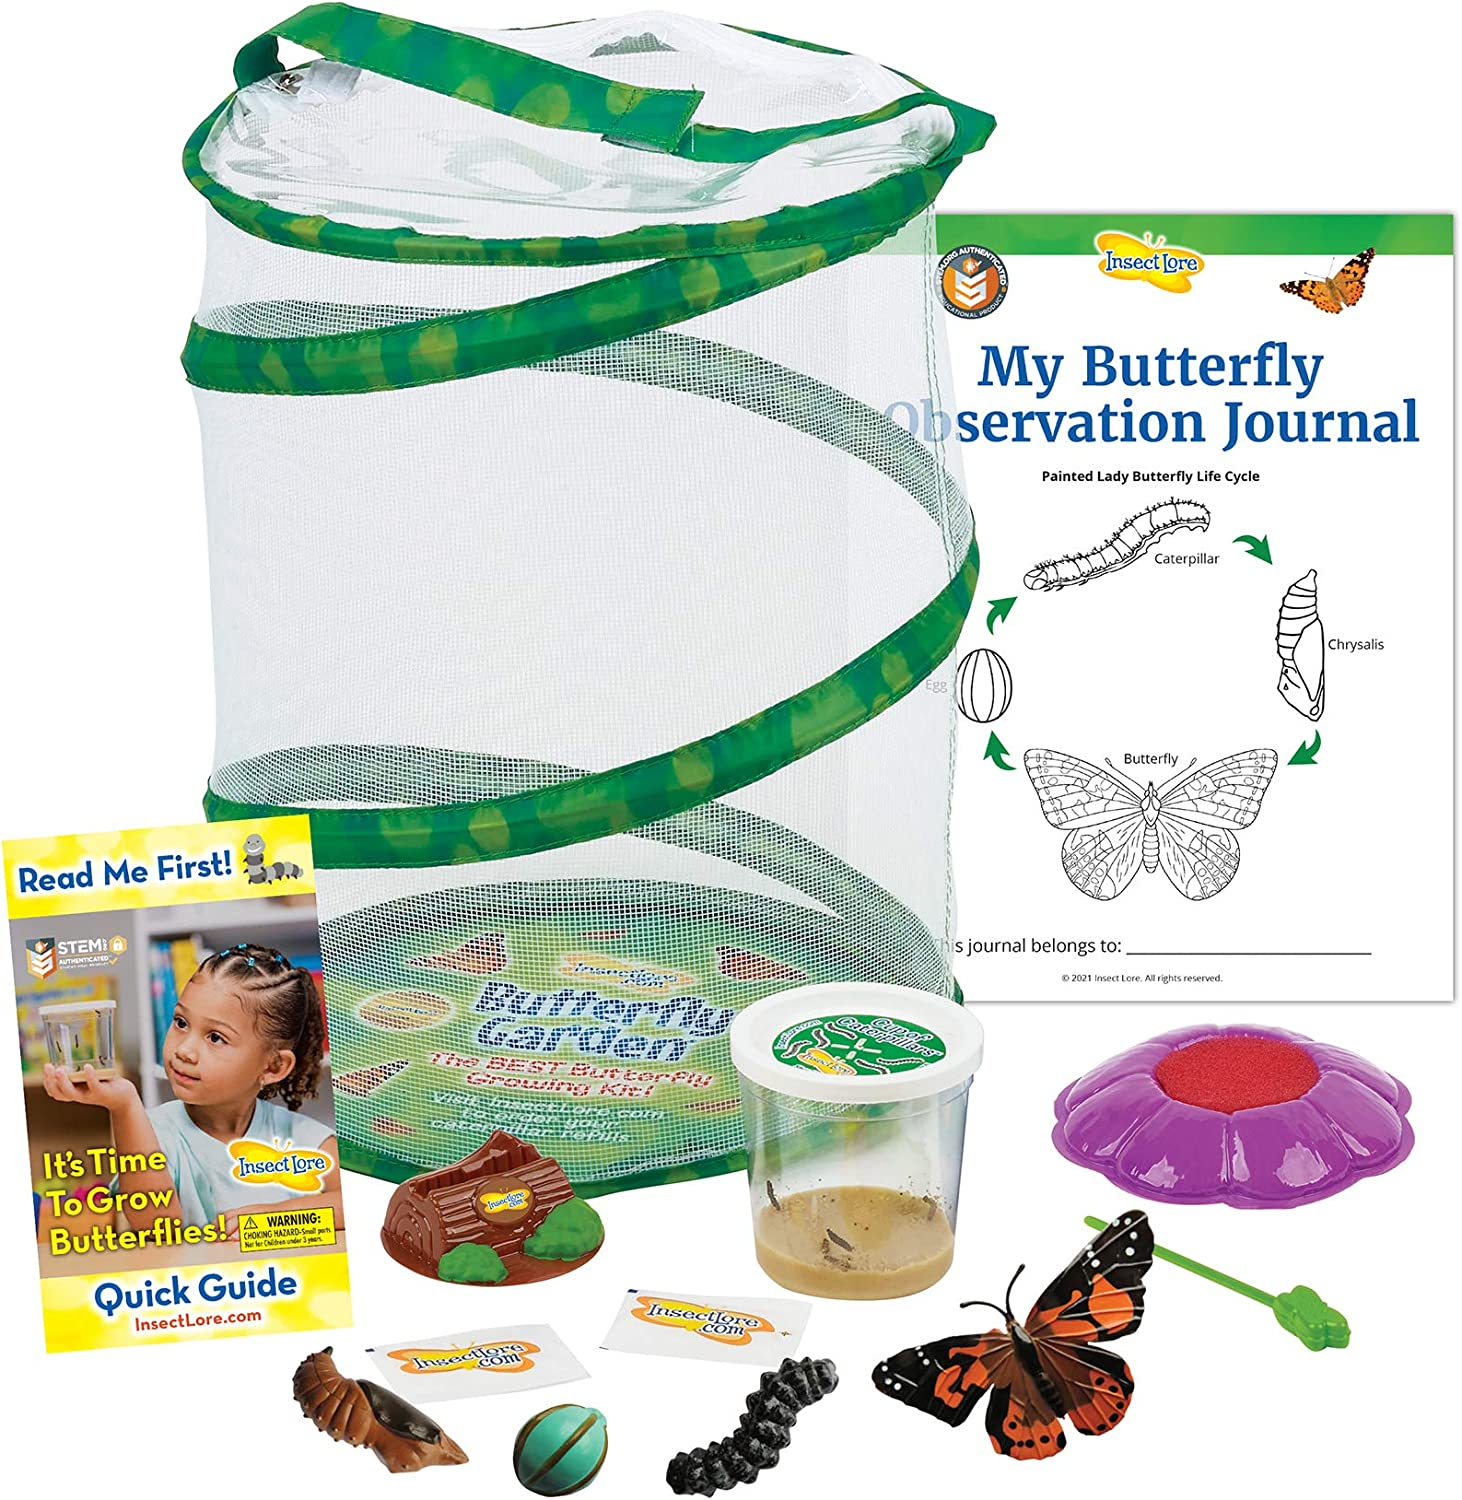 Insect Lore Butterfly Garden with Cup of Caterpillars - Plus Butterfly Life Cycle Stages